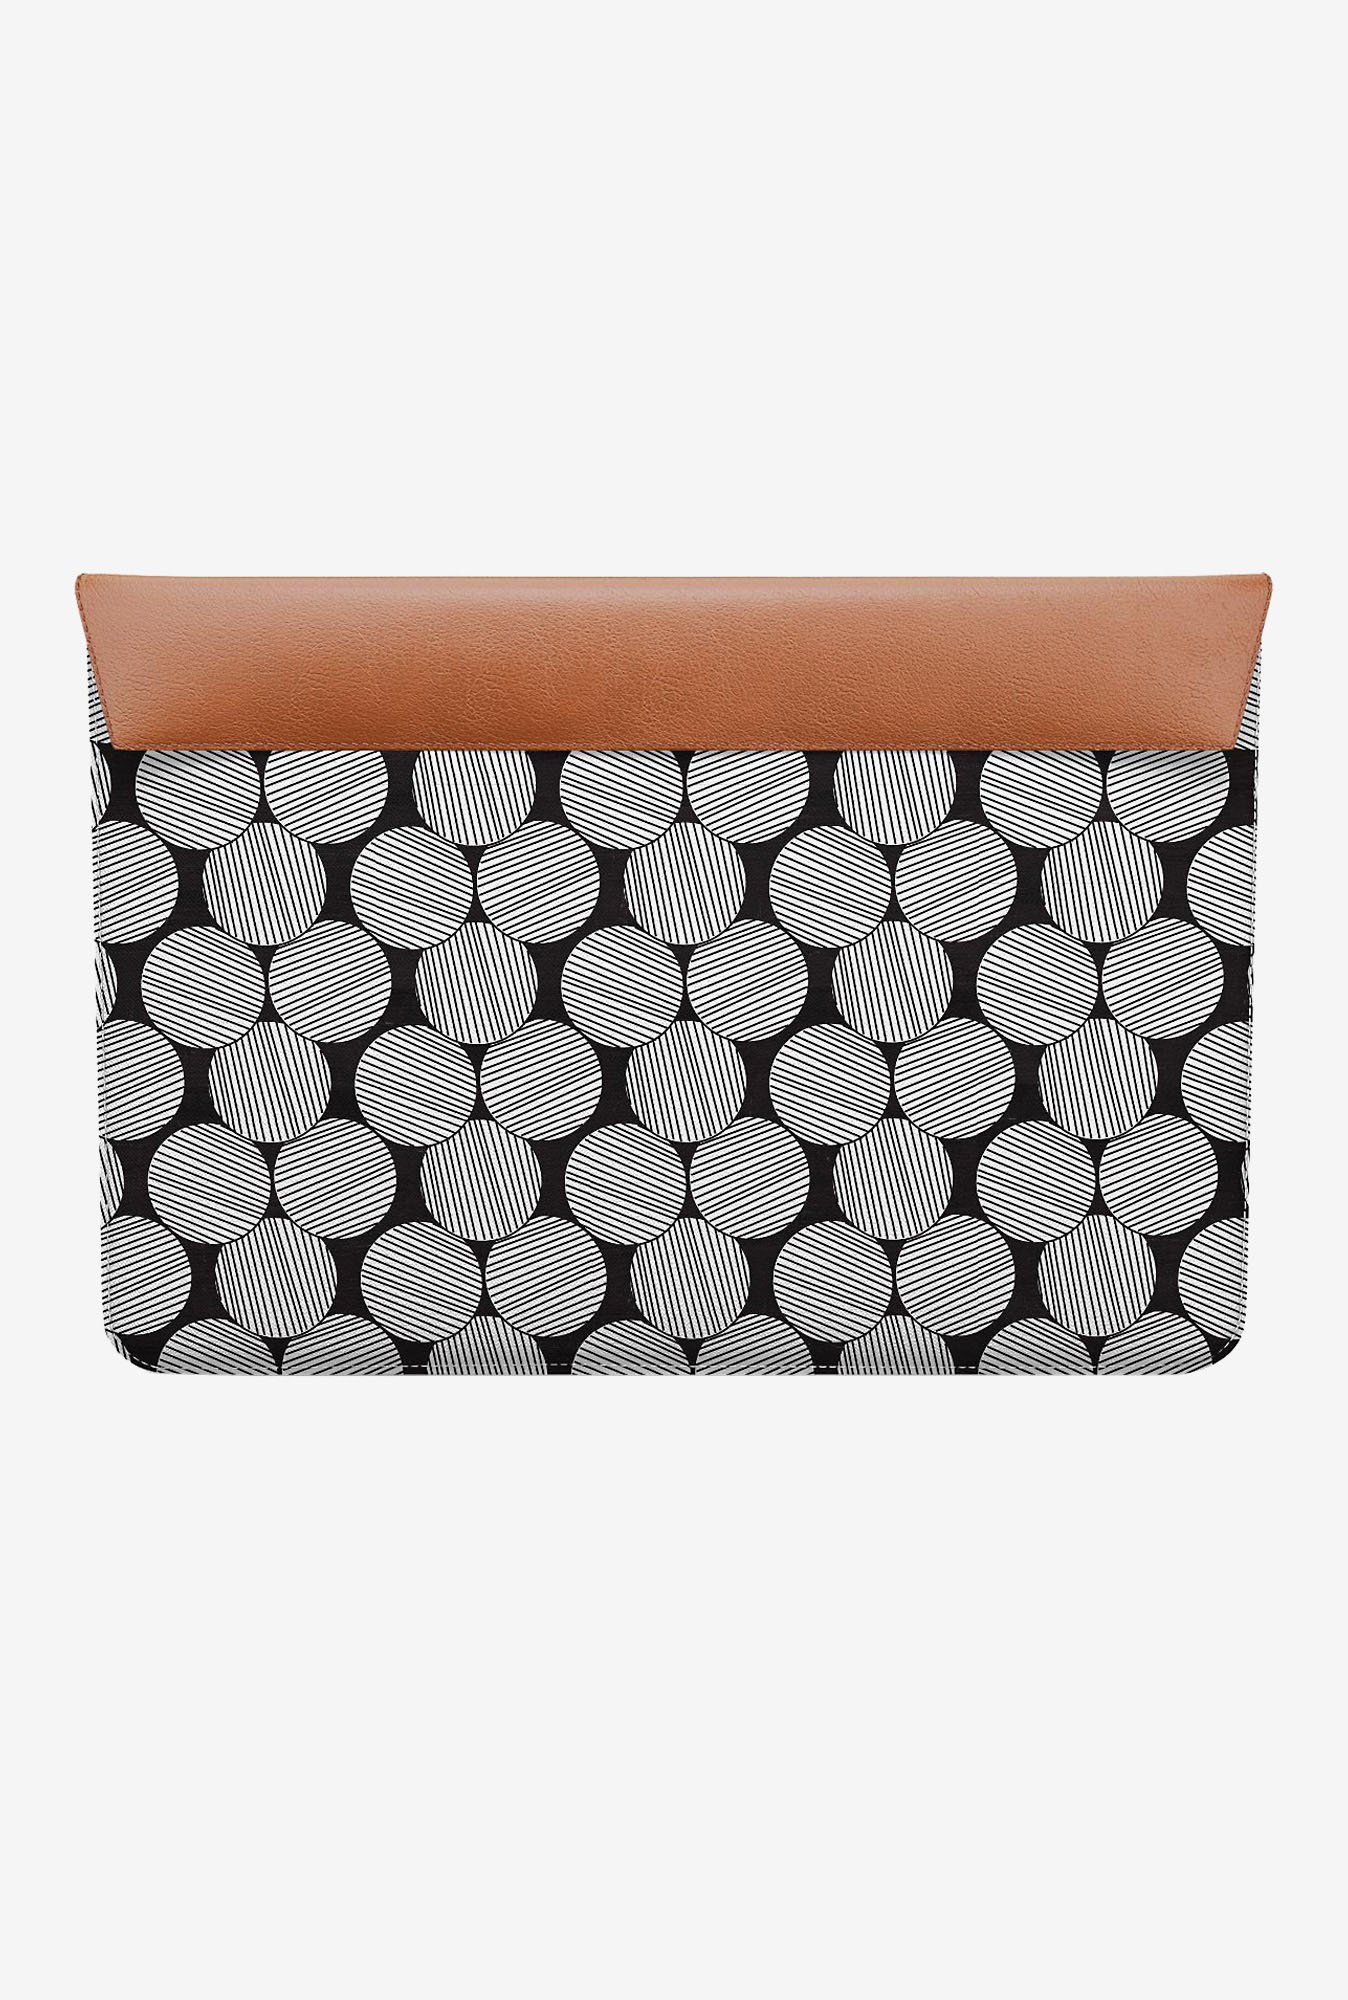 DailyObjects Lined Circles MacBook Air 11 Envelope Sleeve